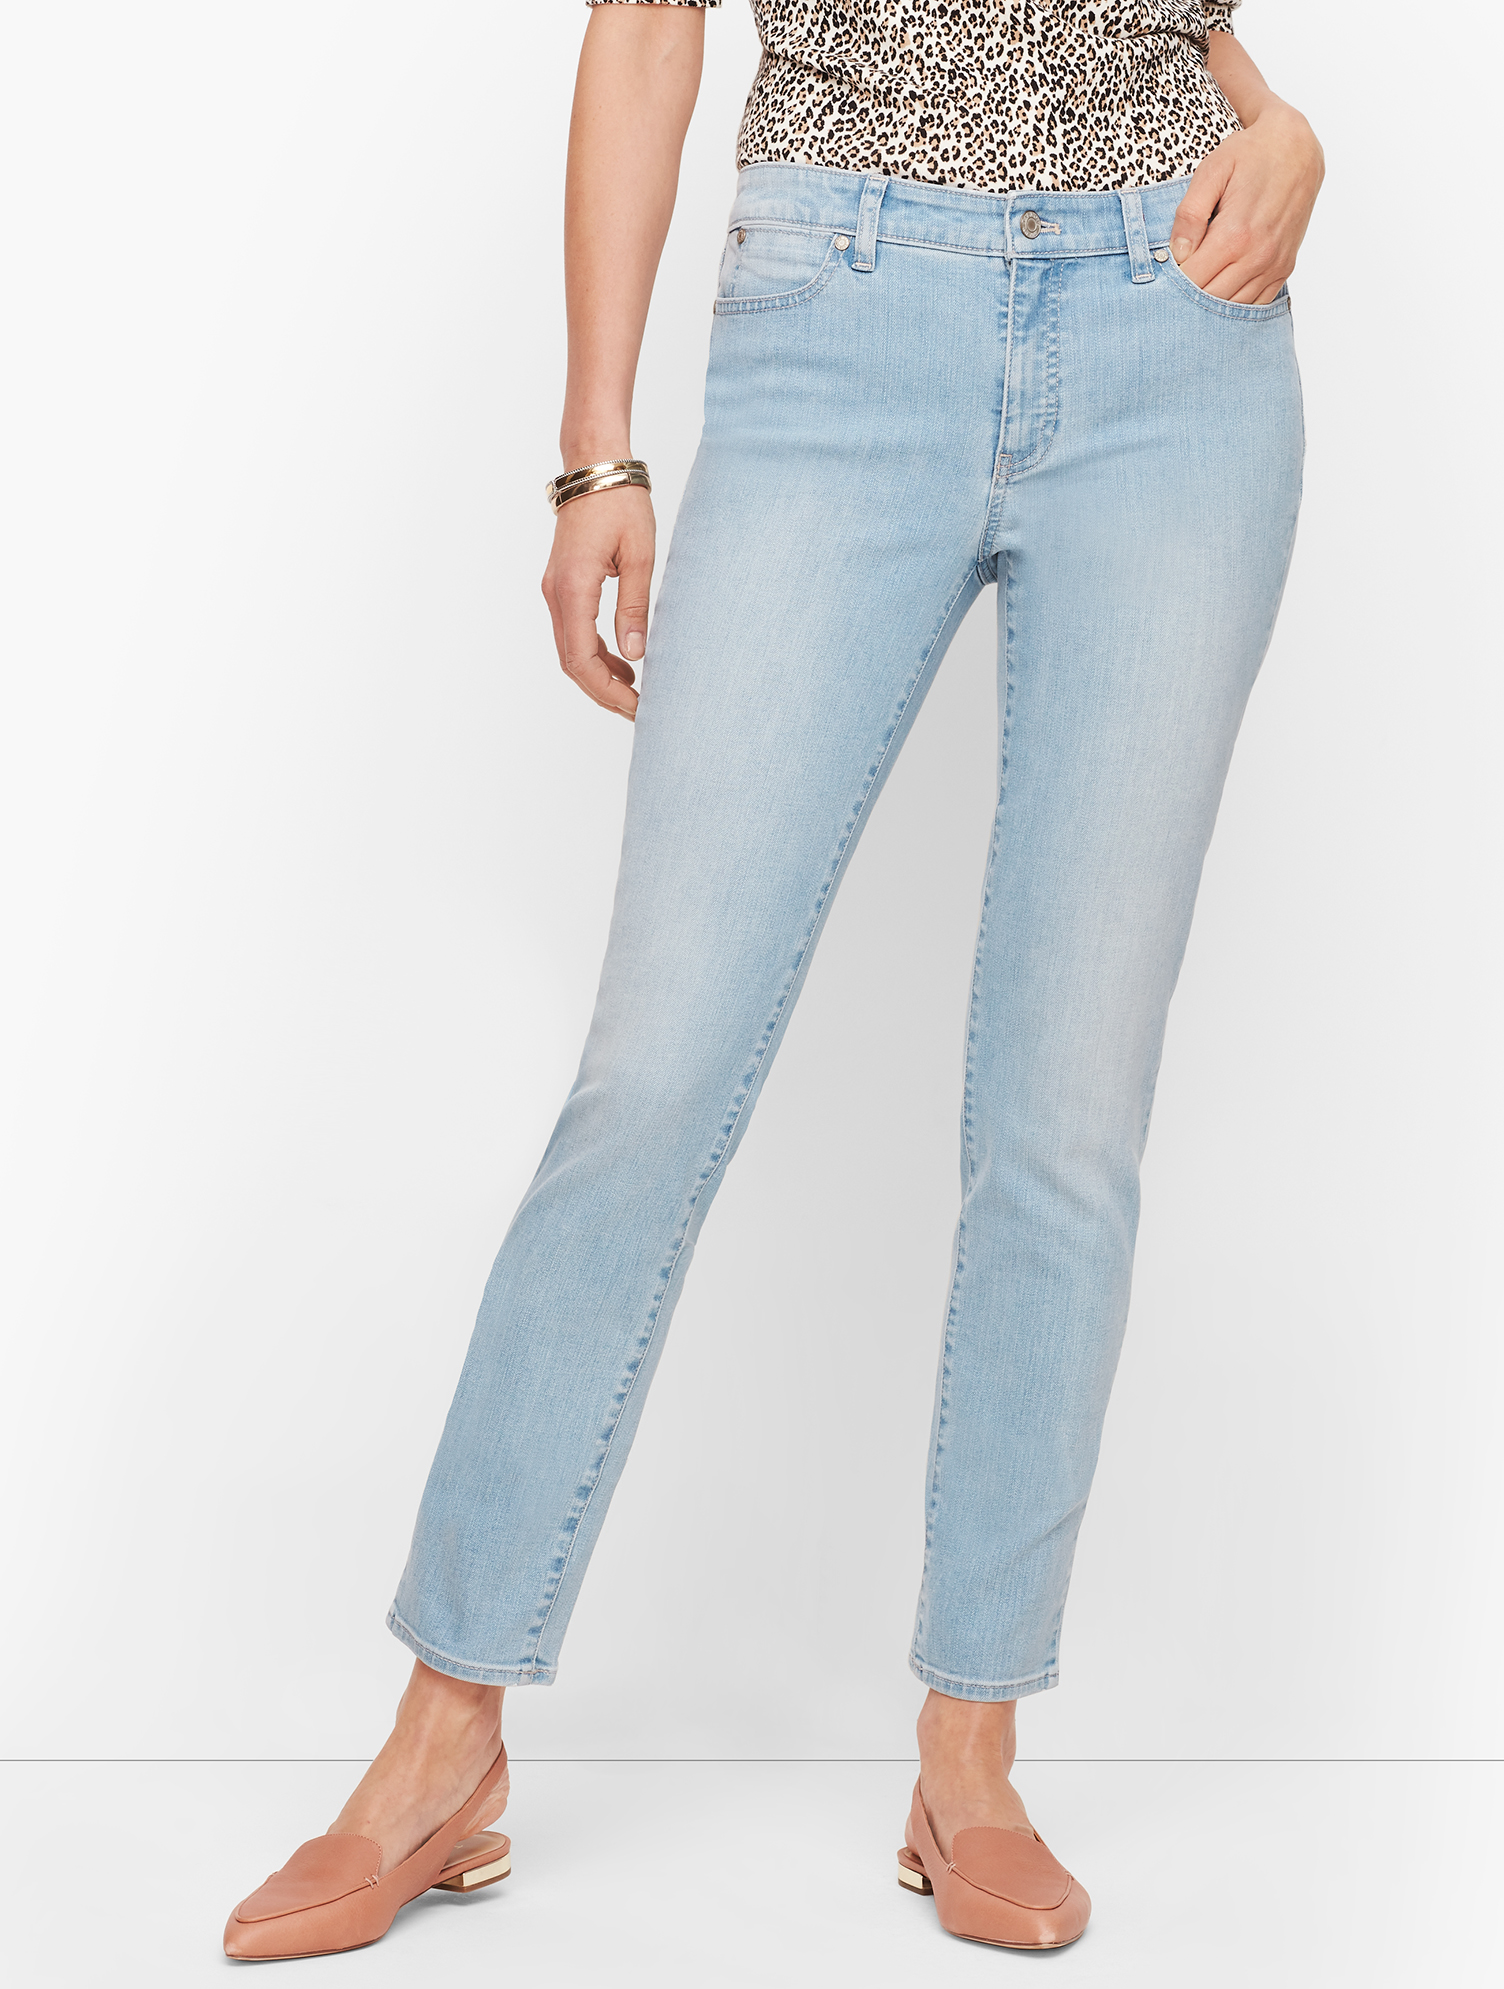 Our Slim Ankle Jean. A touch of stretch. Endless style and comfort. Forever flattering. Also available in Curvy Fit - Slim Ankle Jeans - Skillman Wash - Curvy Fit. Features Slim leg Hits: Above Waist Ankle length Closure: Fly front with button Front Pockets: Five Pocket Back Pockets: Five Pocket Imported Fit: Inseam: Misses: 29 inches; Misses Long: 31 inches; Petite: 26 1/2 inches; Material: 93% Cotton, 6% Polyester, 1% Spandex Care: Machine Wash; Tumble Dry Slim Ankle Jeans - Skillman Wash - 18